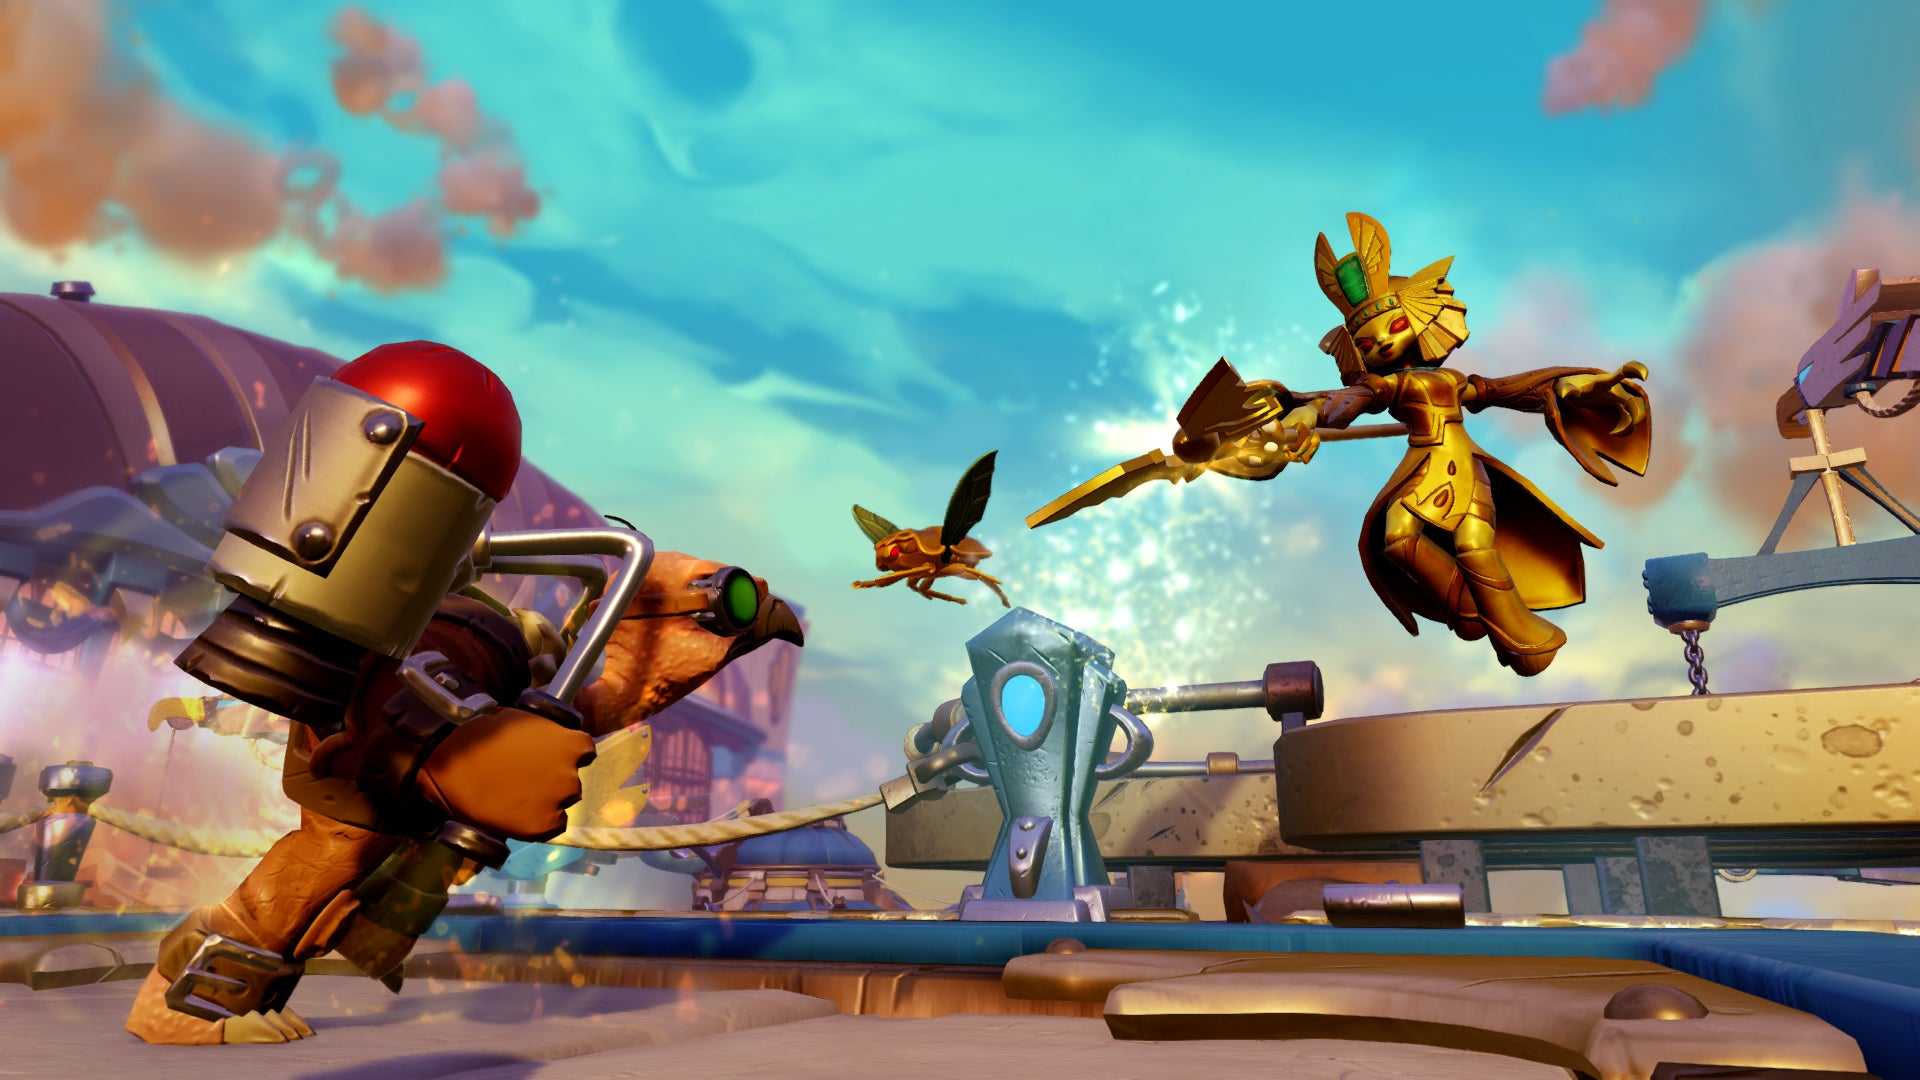 Uncategorized Skylander Games For Kids the 9 best video games for kids to play this christmas trusted reviews